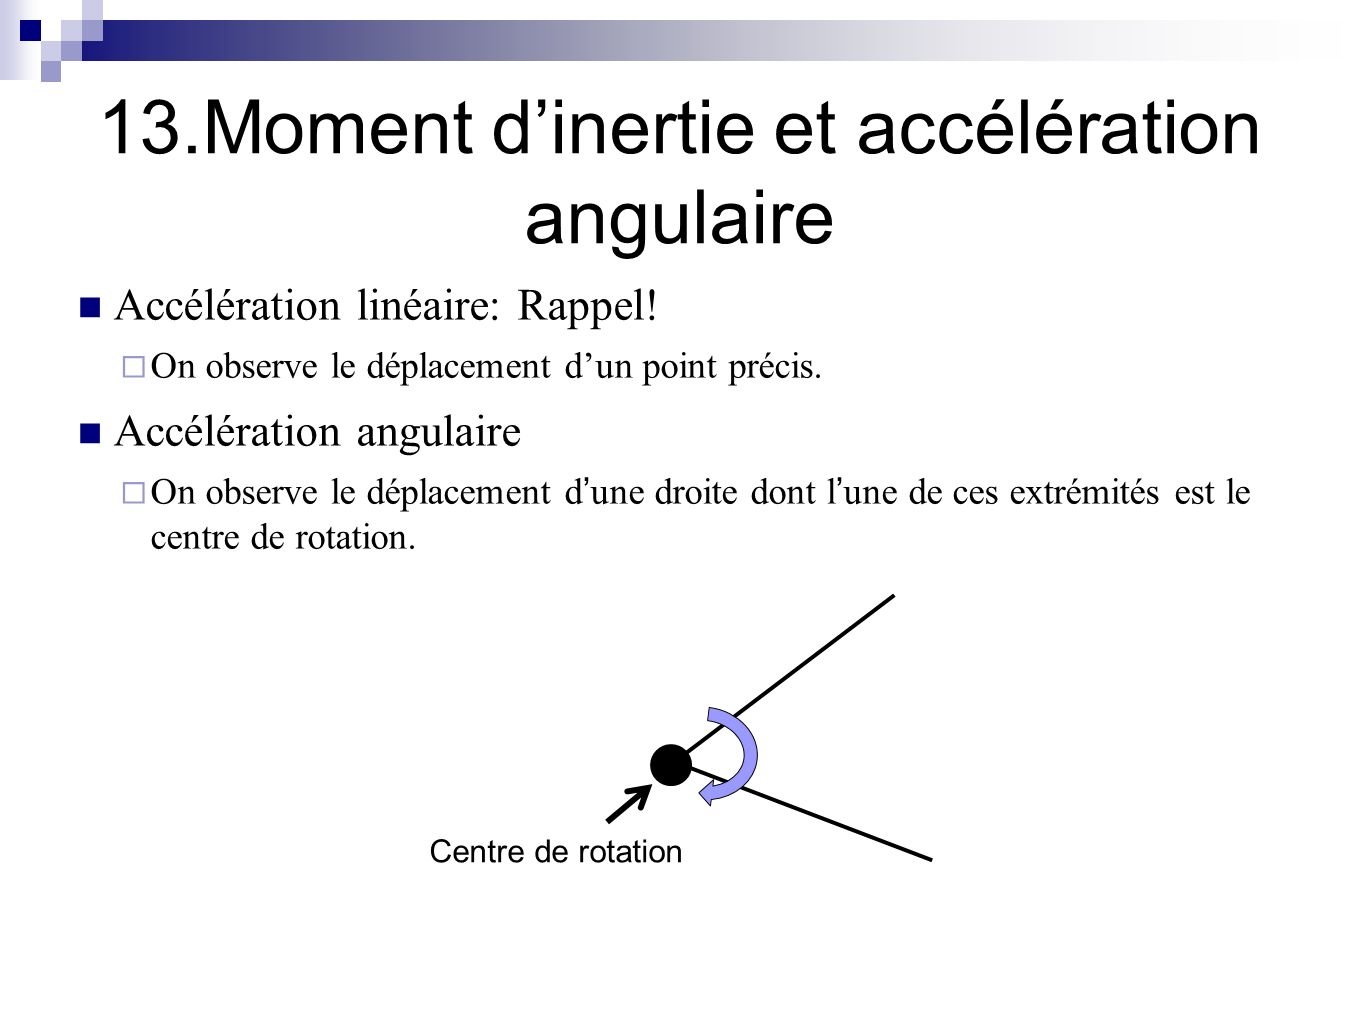 deplacement angulaire